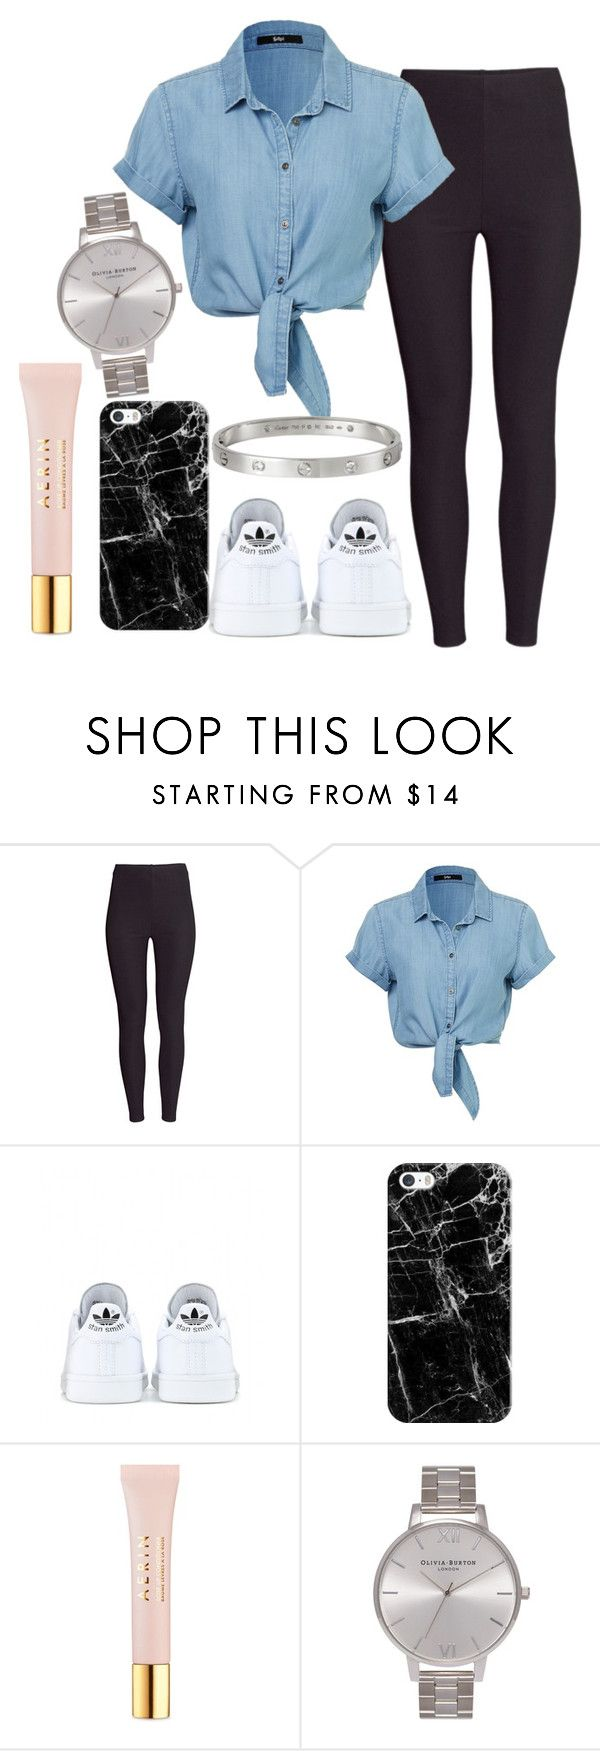 """Untitled#1352"" by mihai-theodora ❤ liked on Polyvore featuring H&M, adidas, Casetify, AERIN, Olivia Burton, Cartier, women's clothing, women, female and woman"